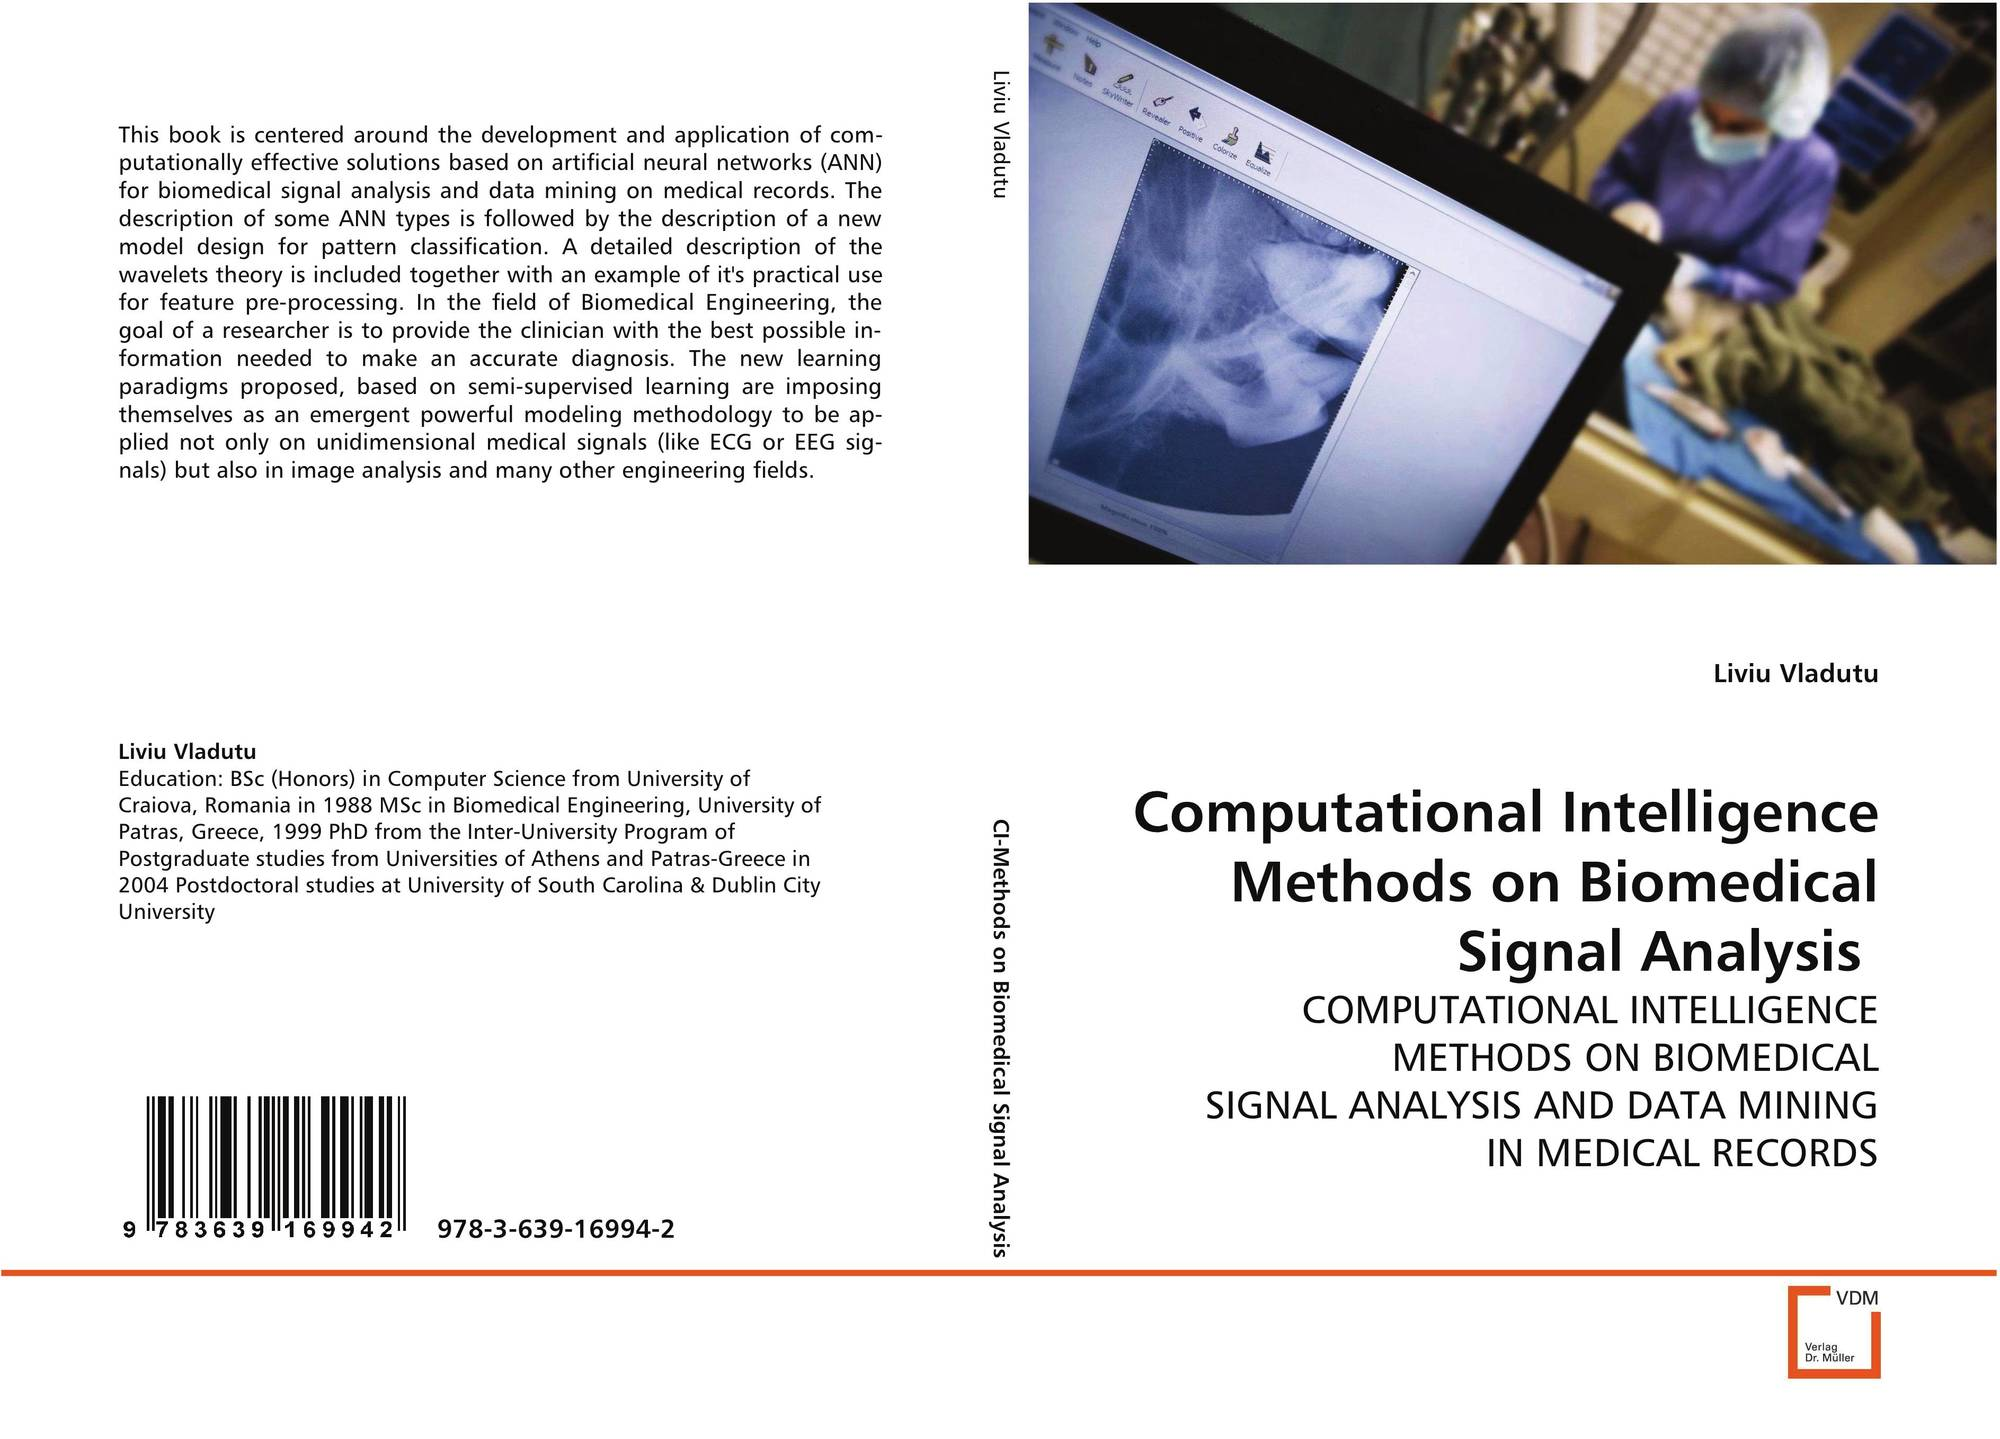 digital signal processing in fields of biomedical sciences biology essay In addition, courses in integrated circuits, solid state devices, optical electronics, fiber optics and integrated optics, applied electromagnetic theory, digital signal processing, random processes and linear systems are useful preparations for graduate courses in electrical engineering.